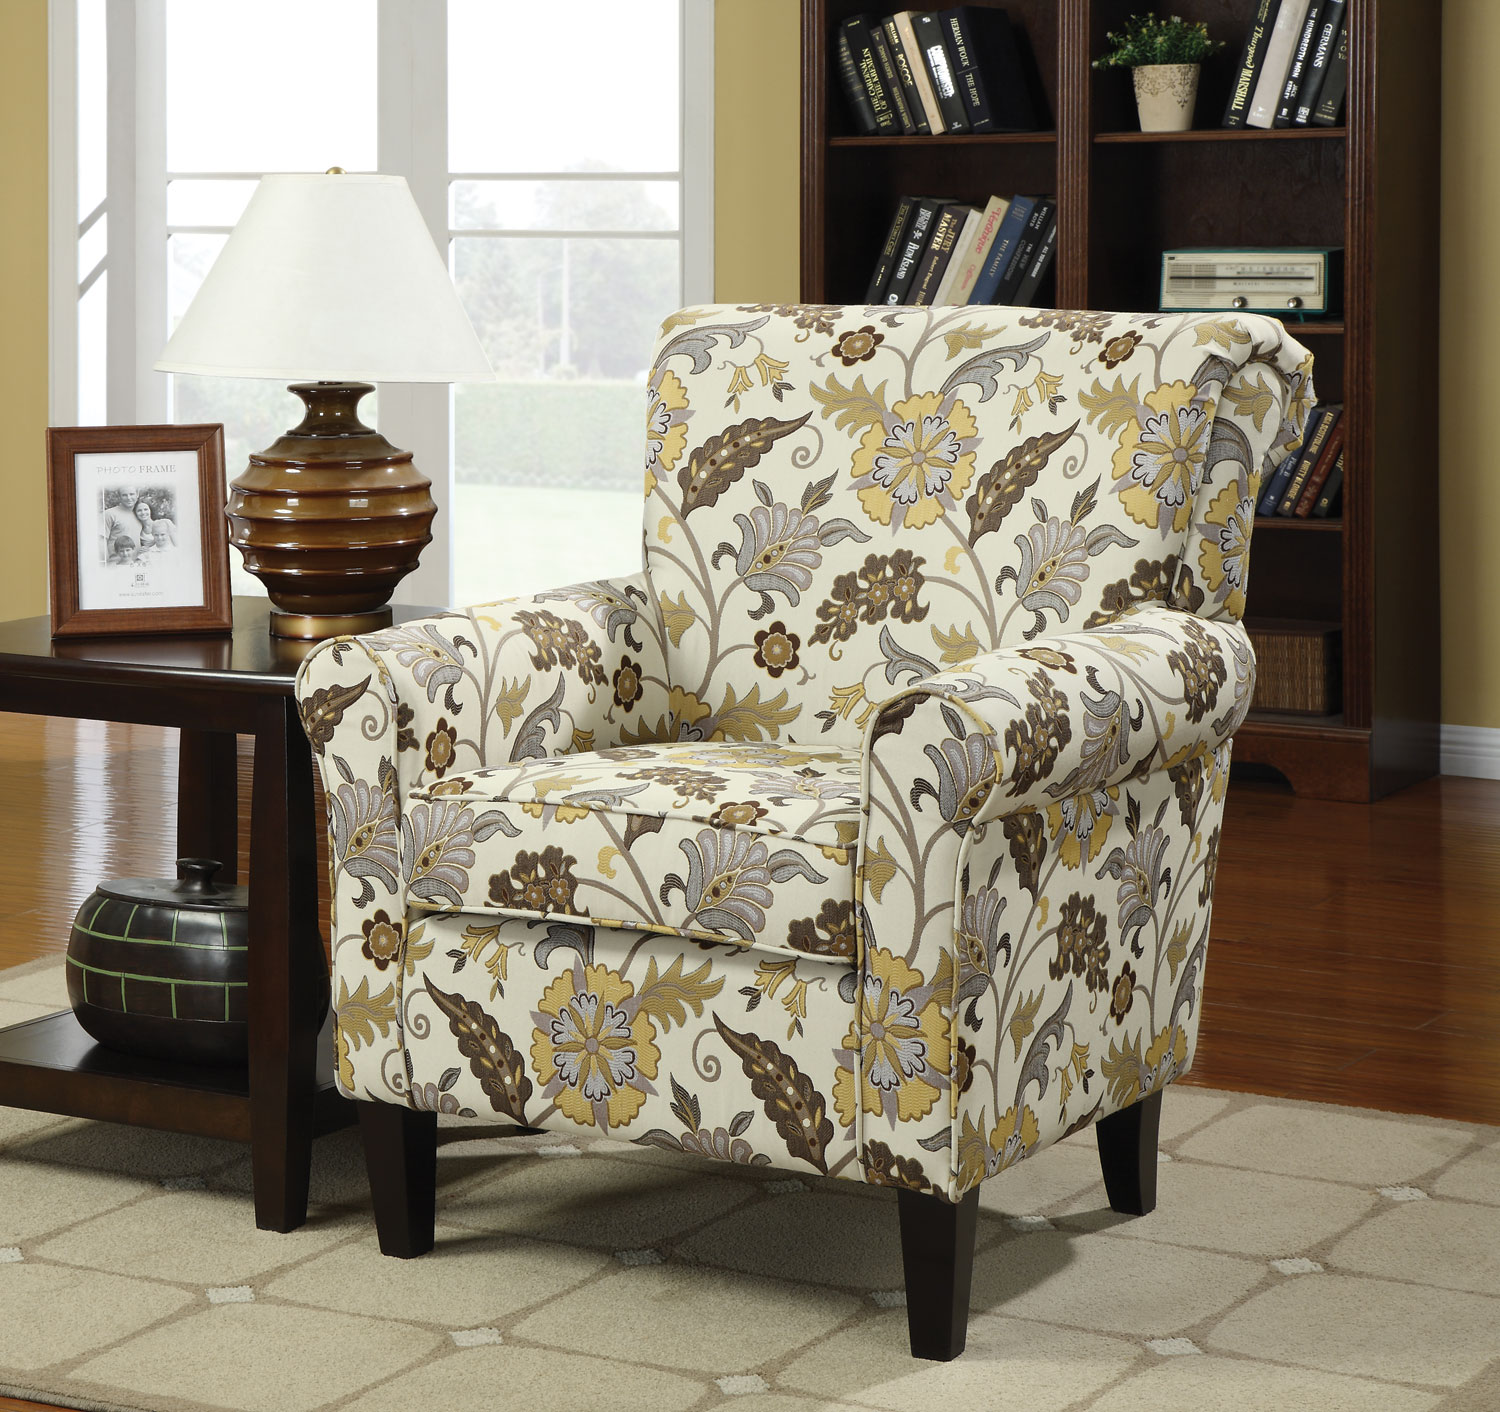 accent chair with arms morganallen designs lovable floral honnally chairs furniture toronto for patio ikea desk legs small decorative side tables black counter height table big